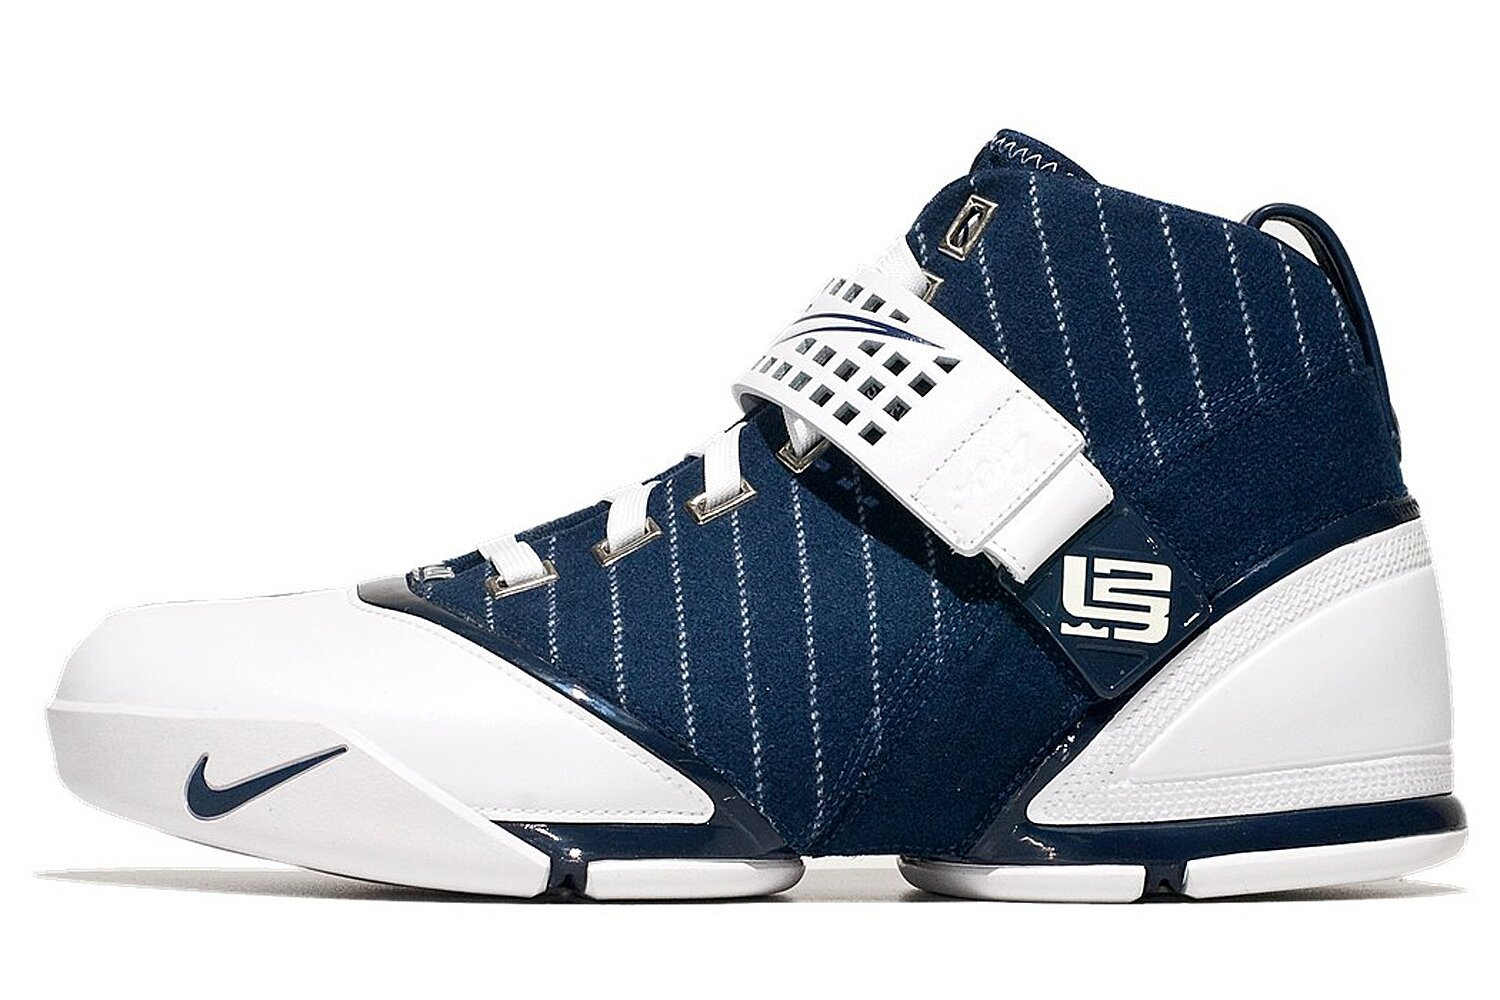 cec52b4cd876 LeBron James Signature Sneakers  Ranking the Best of the King